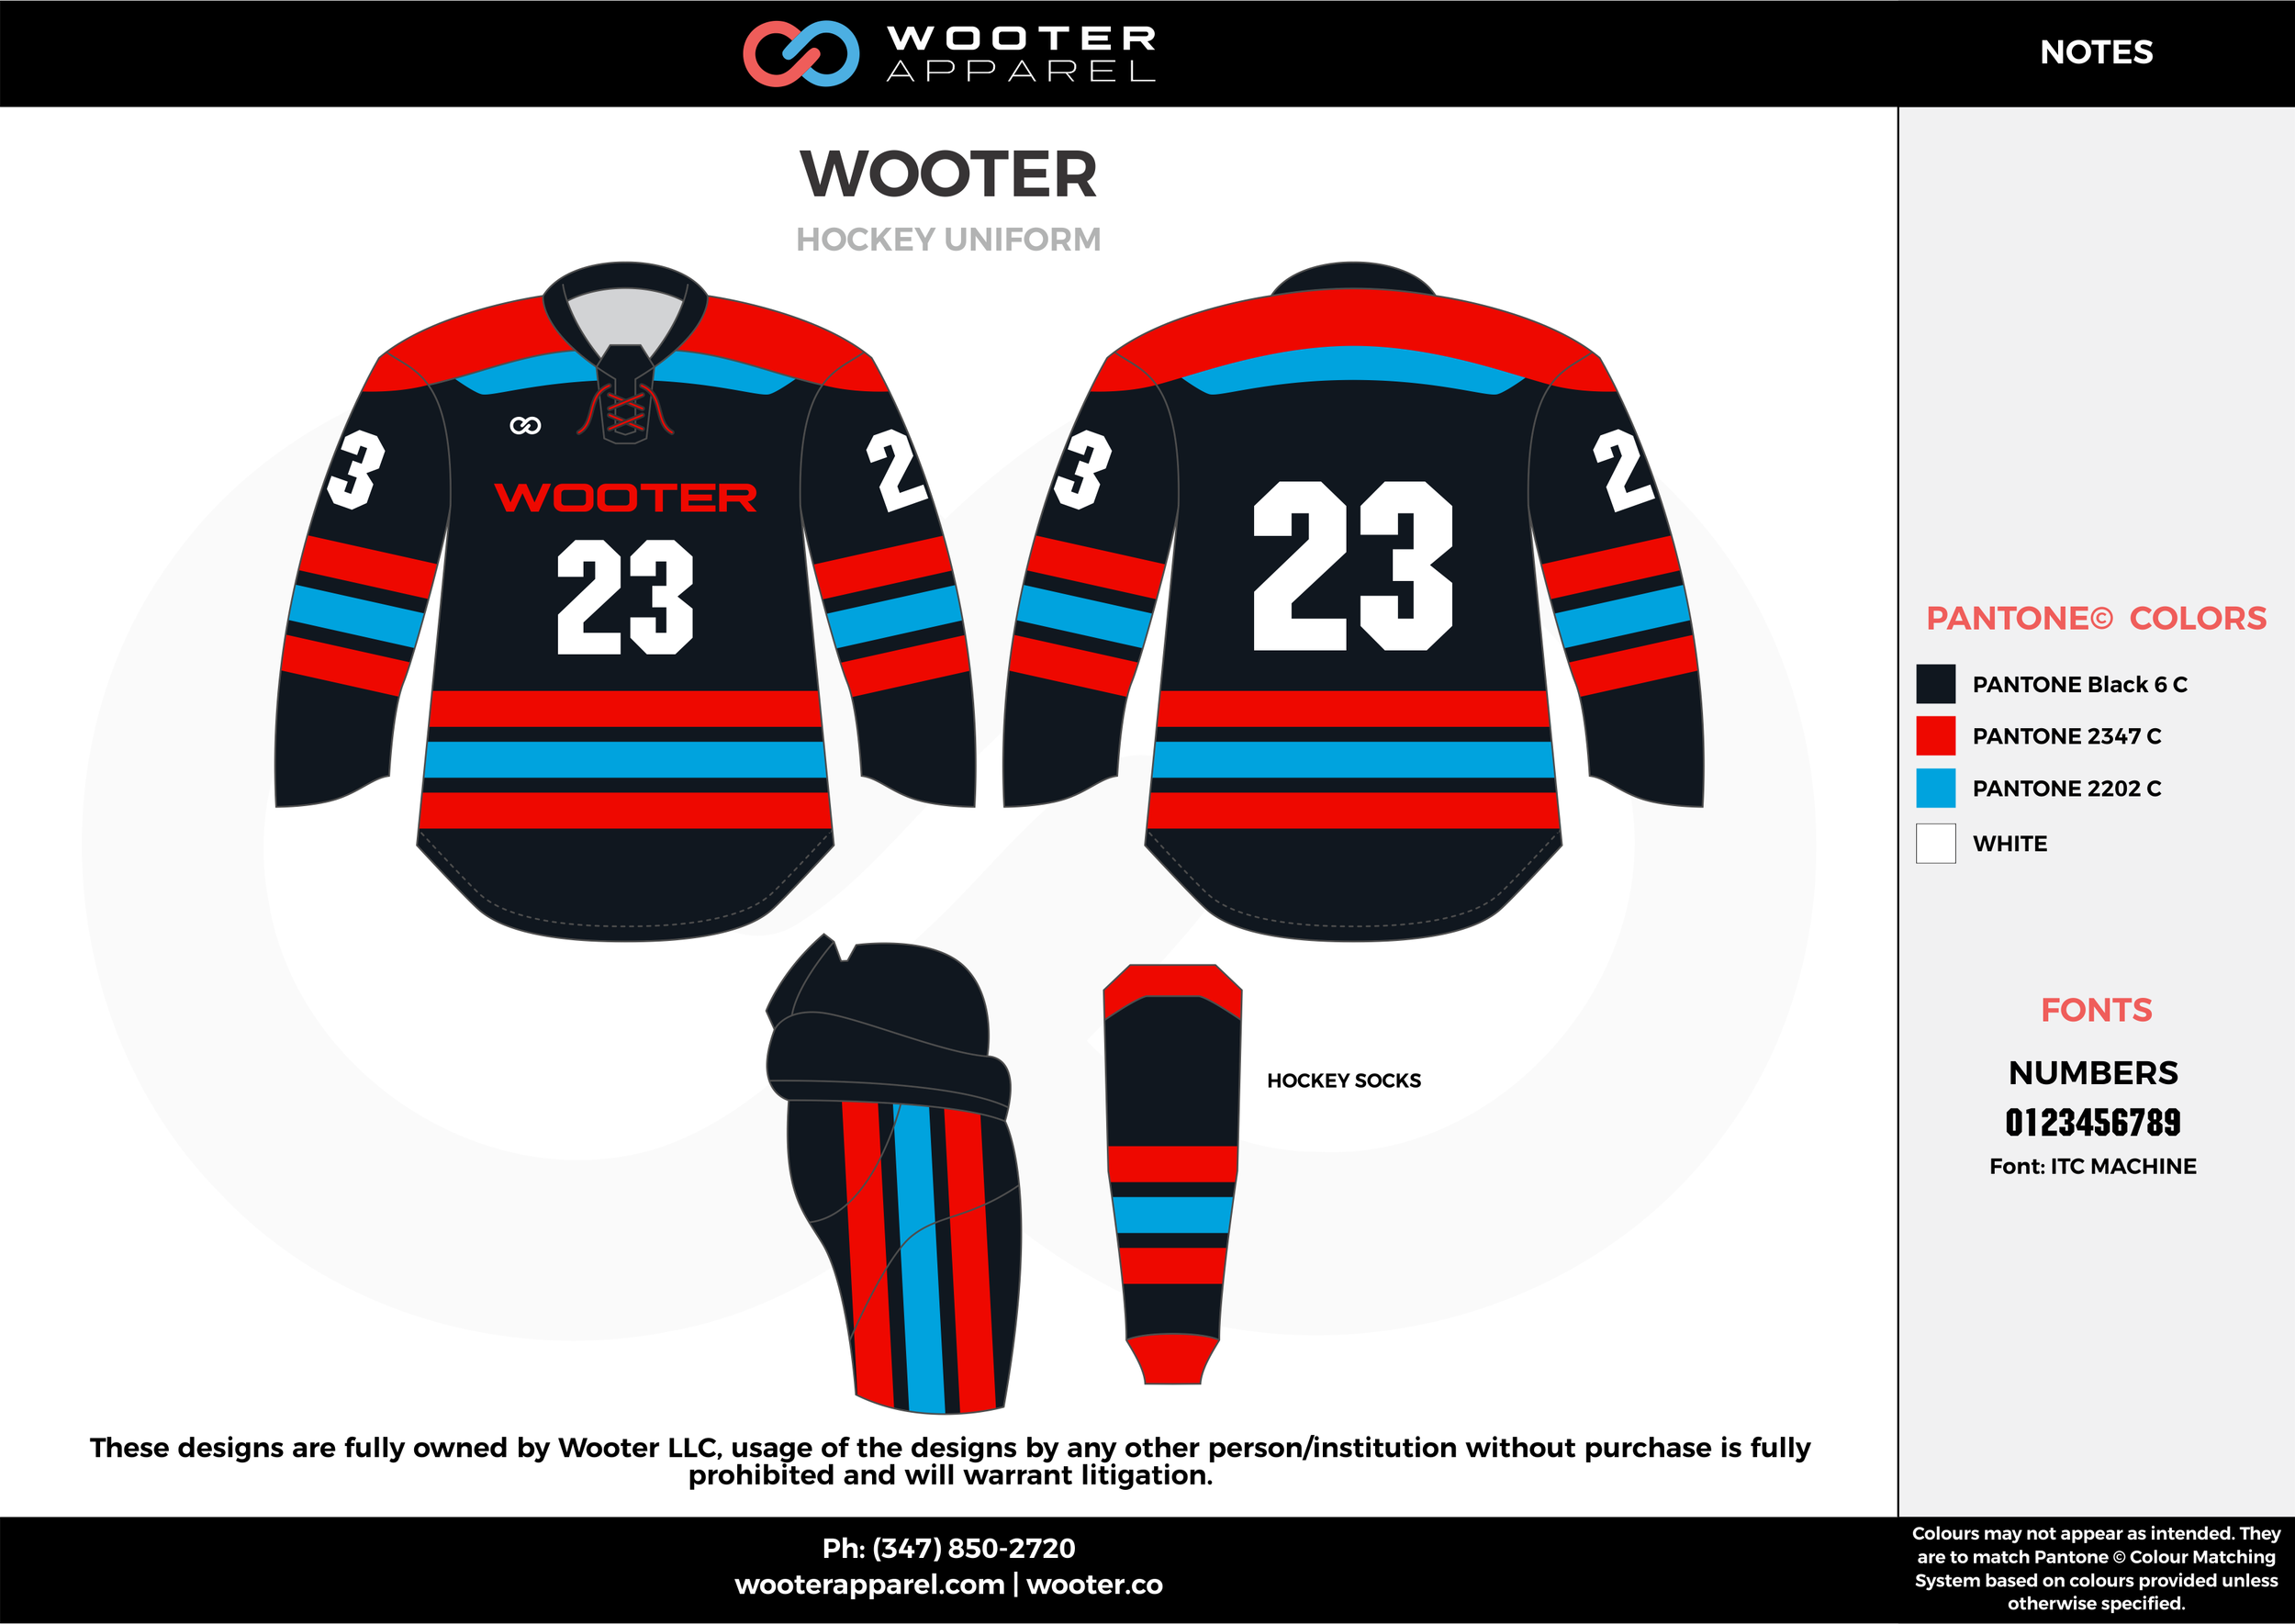 WOOTER red dark blue sky blue white hockey uniforms jerseys socks